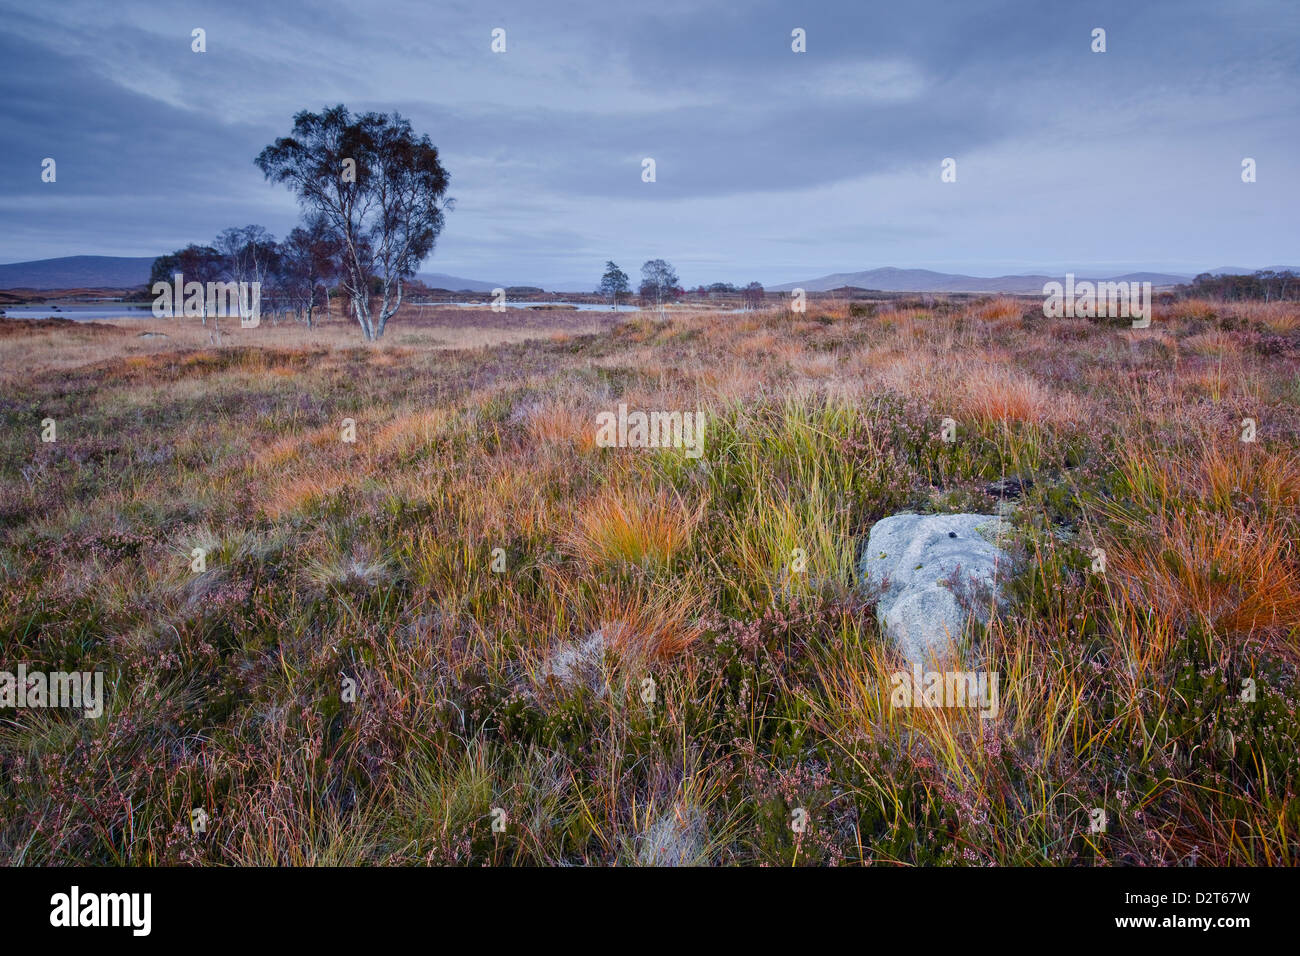 The area of Rannoch Moor, a Site of Special Scientific Interest, Highlands, Scotland, United Kingdom, Europe - Stock Image